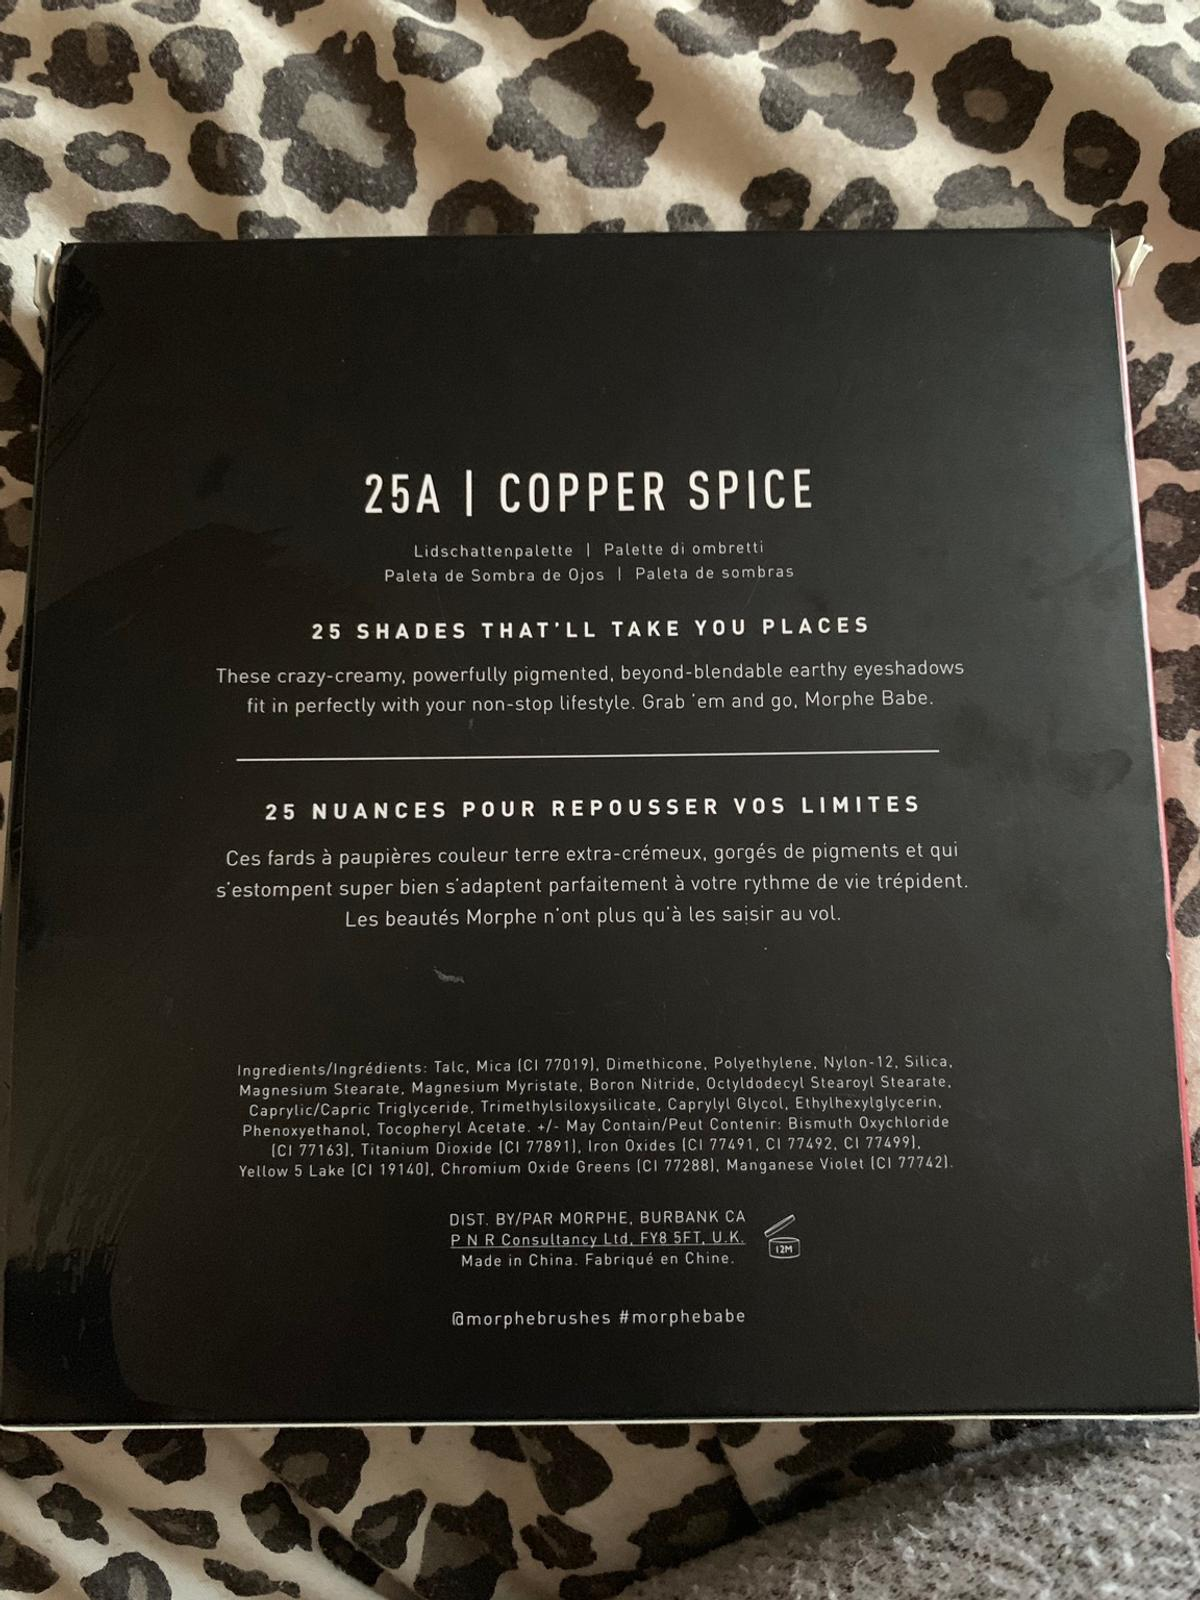 Morphe Palette (25A Copper Spice) in N16 London for £20 00